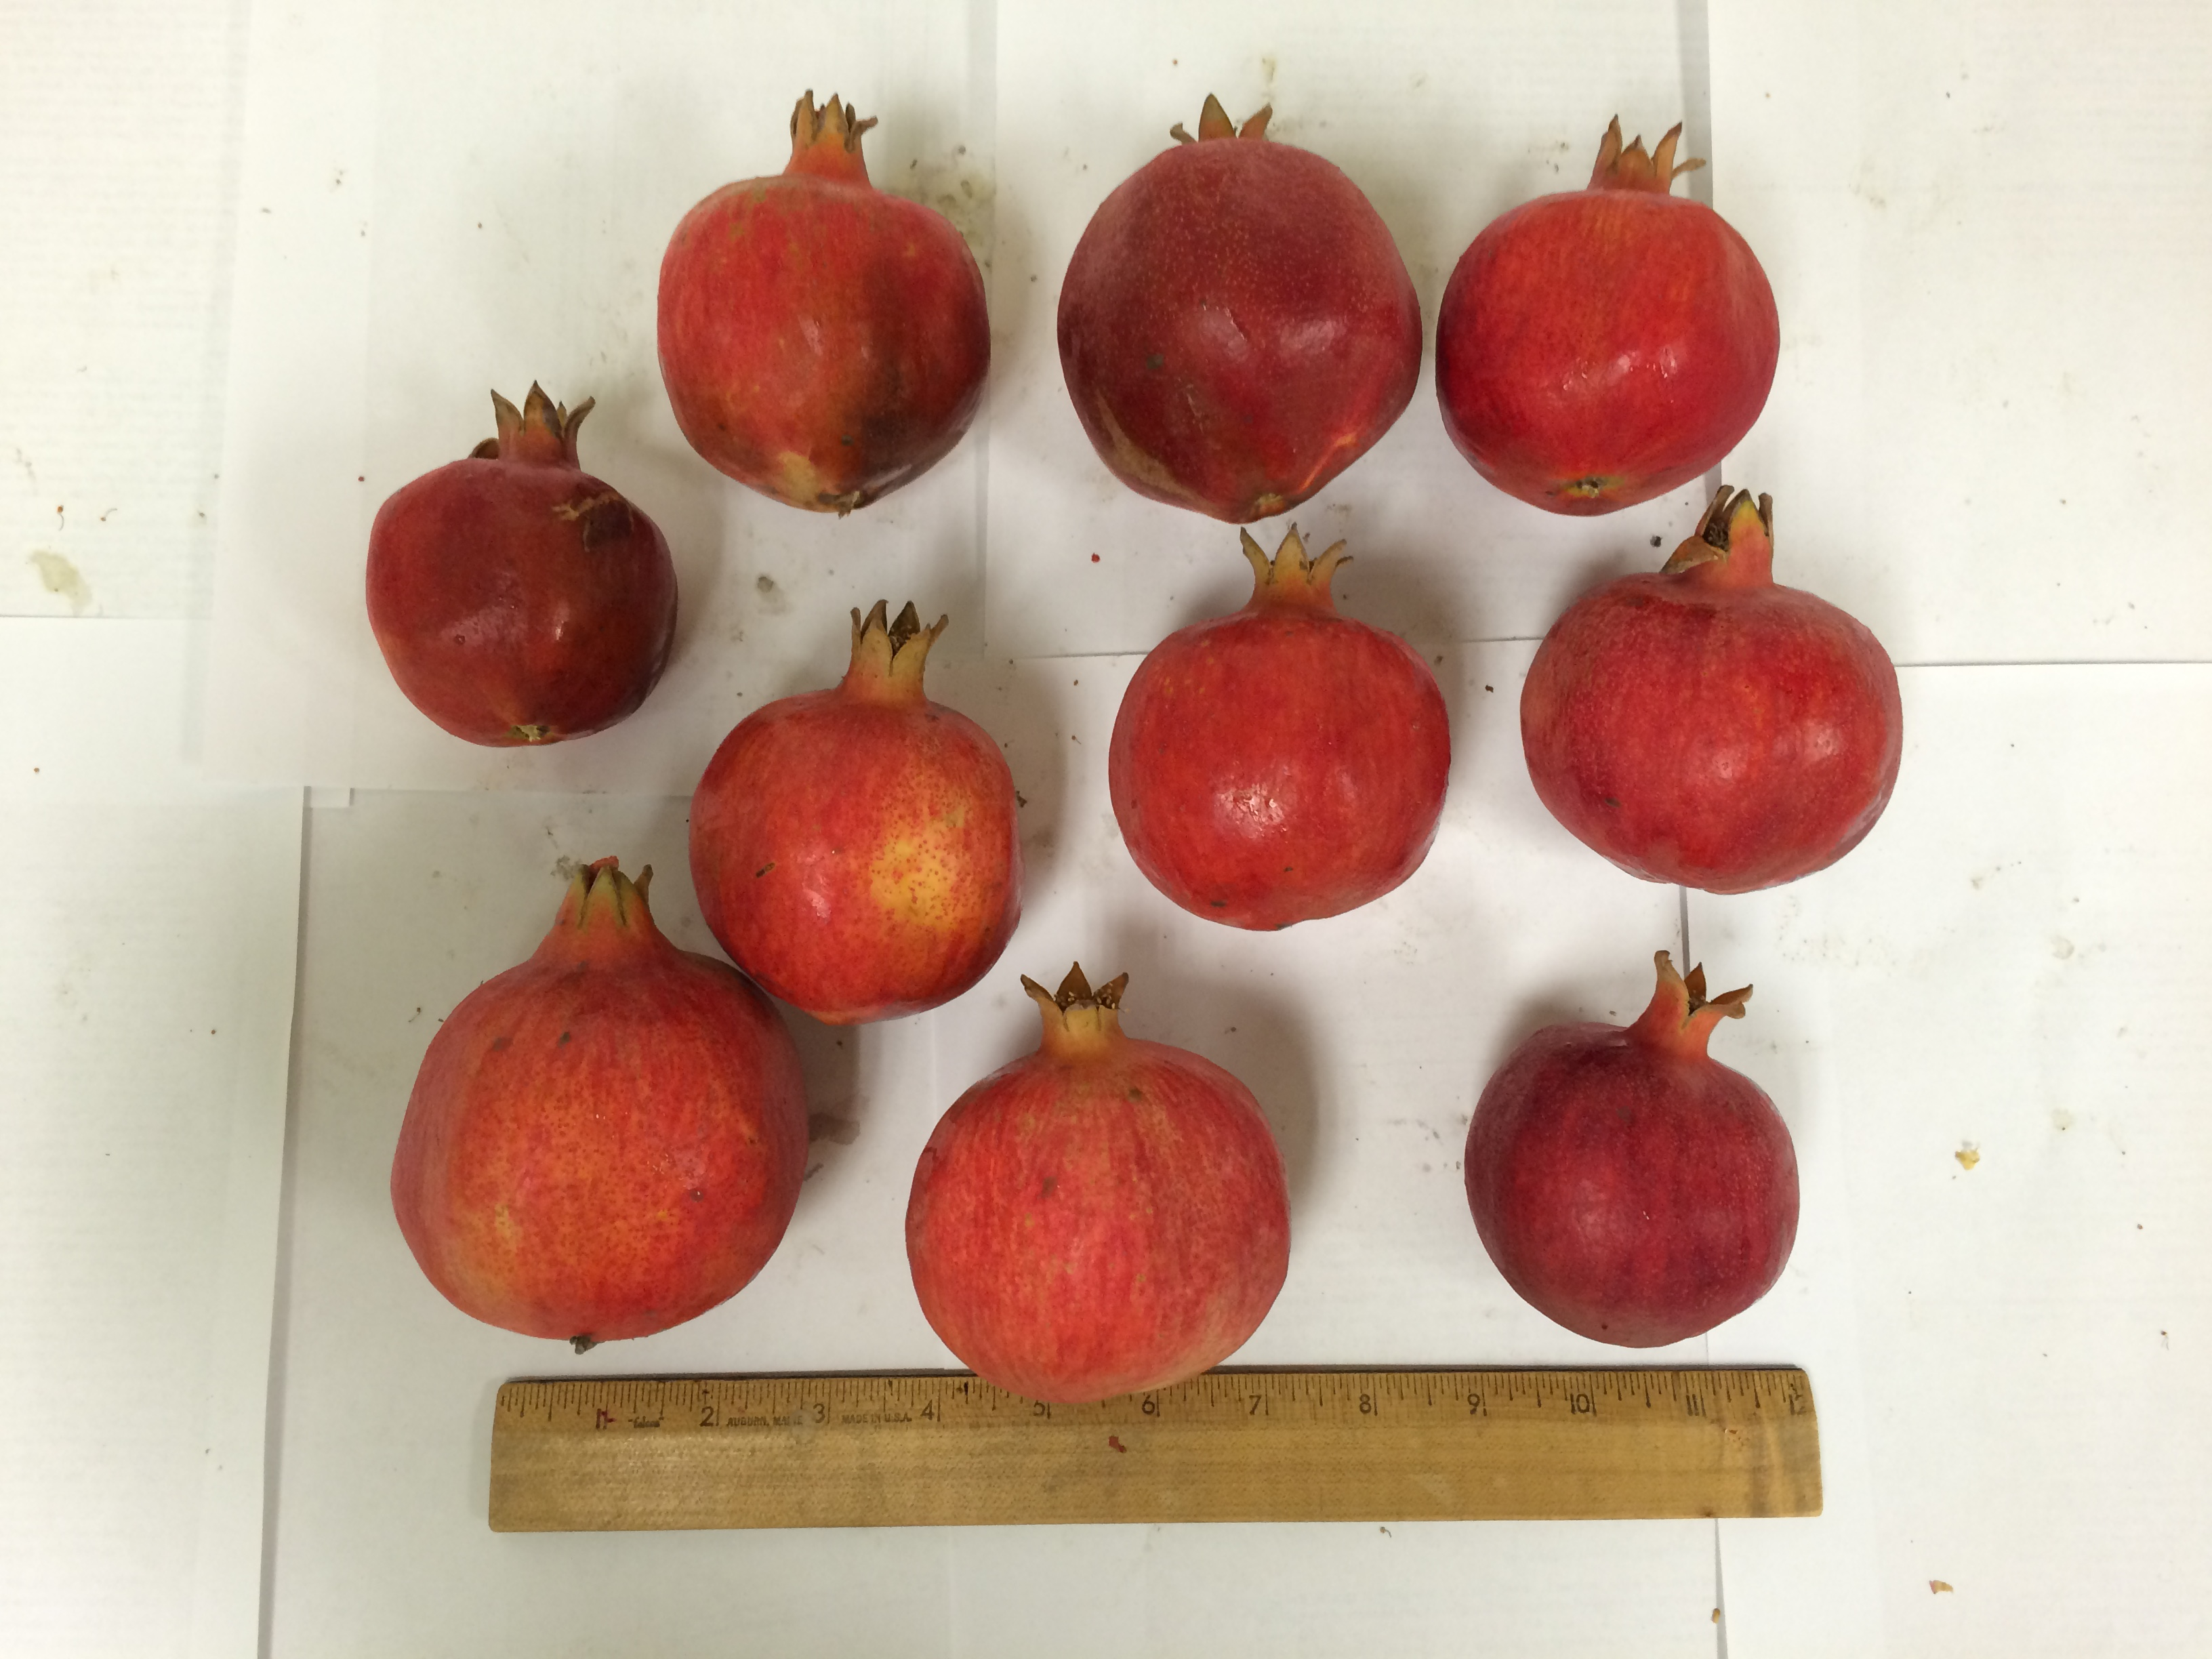 These pomegranates are an inch or two smaller than the typical size, but they're packed with anti-oxidents.